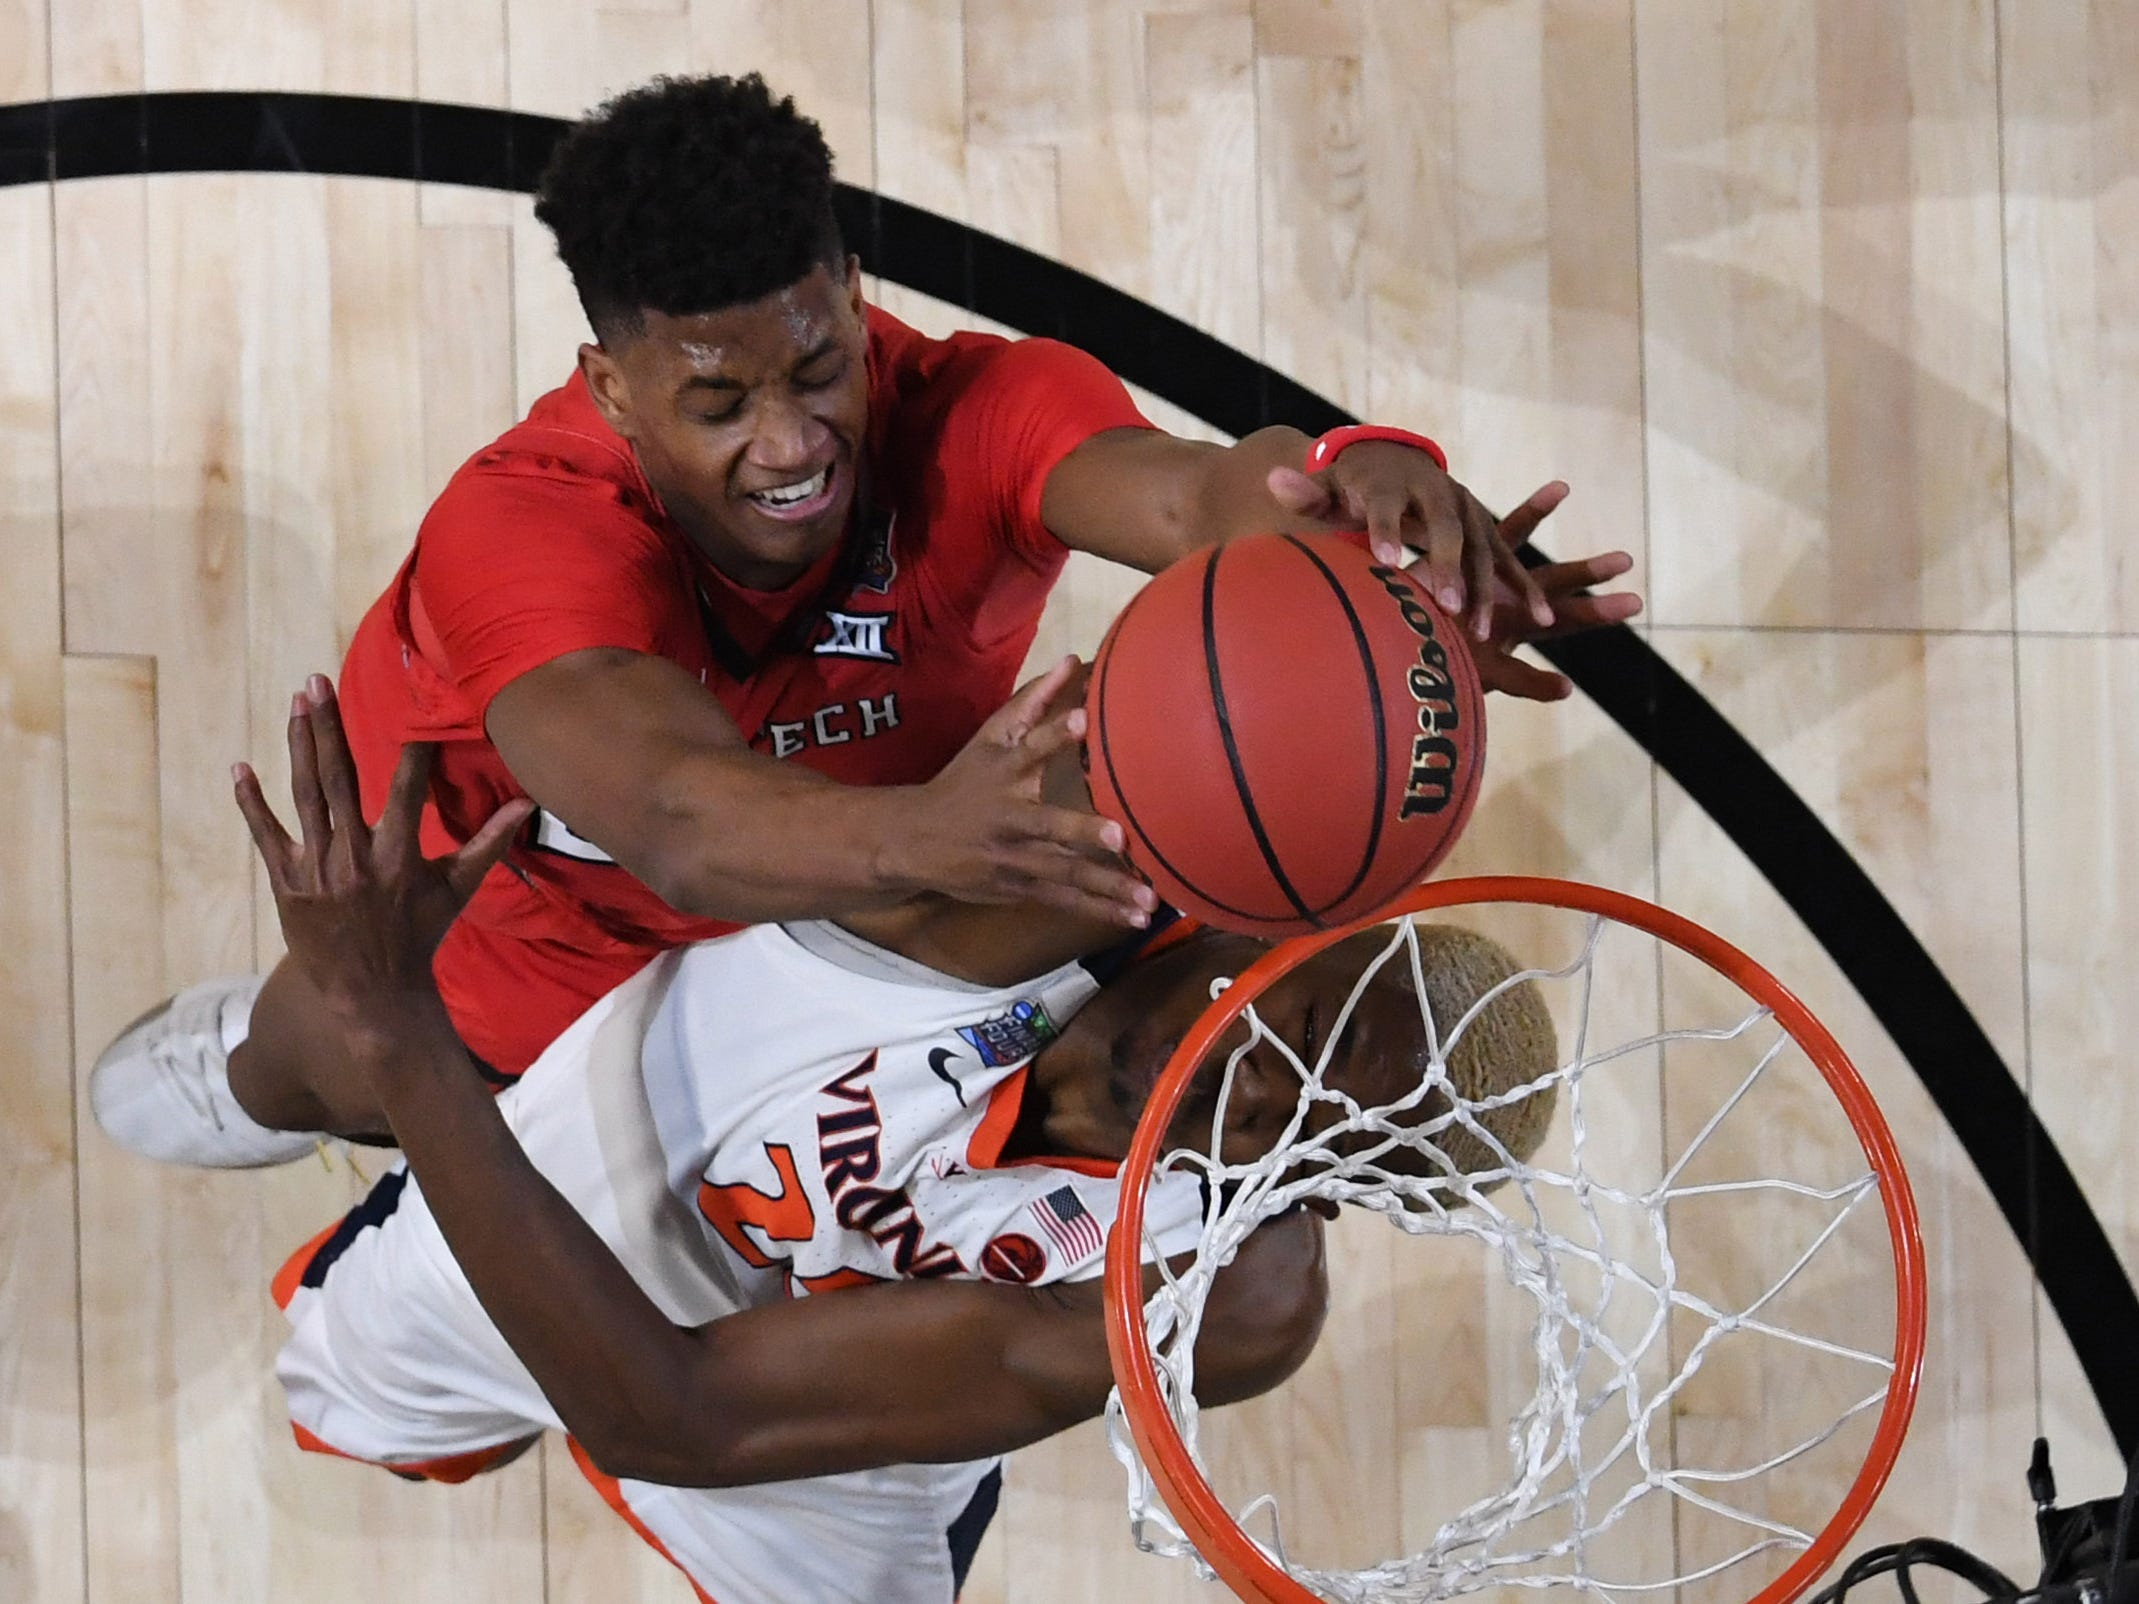 Texas Tech's Jarrett Culver misses a shot against Virginia in the first half in the championship game.